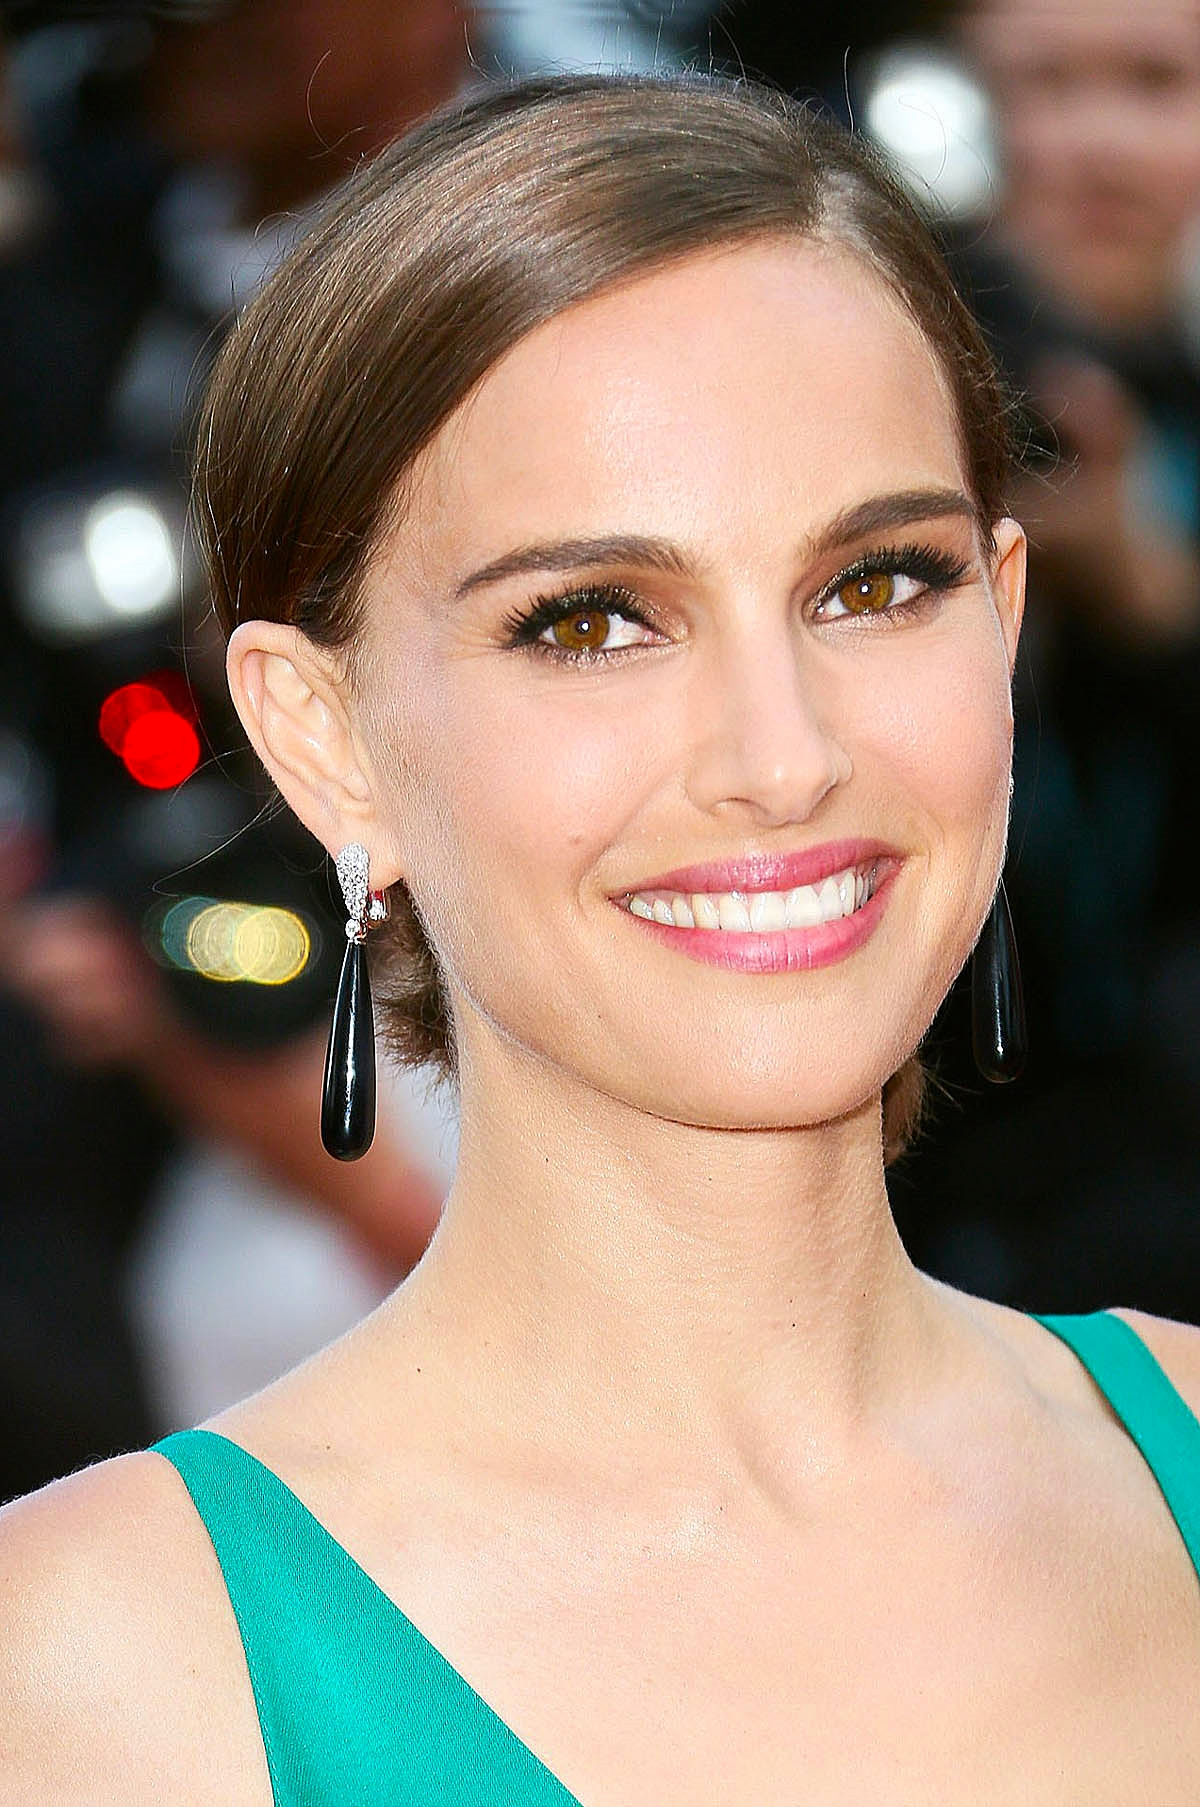 Natalie Portman at the 'Sicario' premiere          Photo by Getty